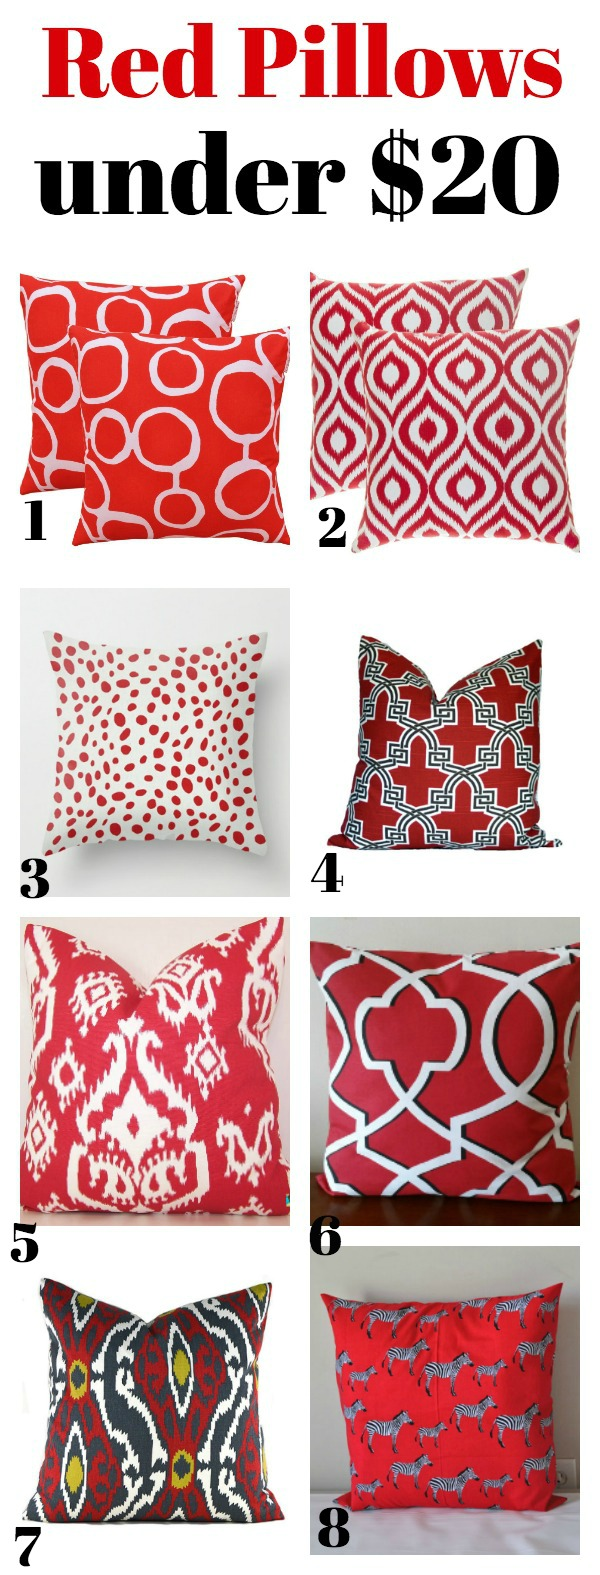 Red Pillows Under $20 - Affordable, but stylish pillows!